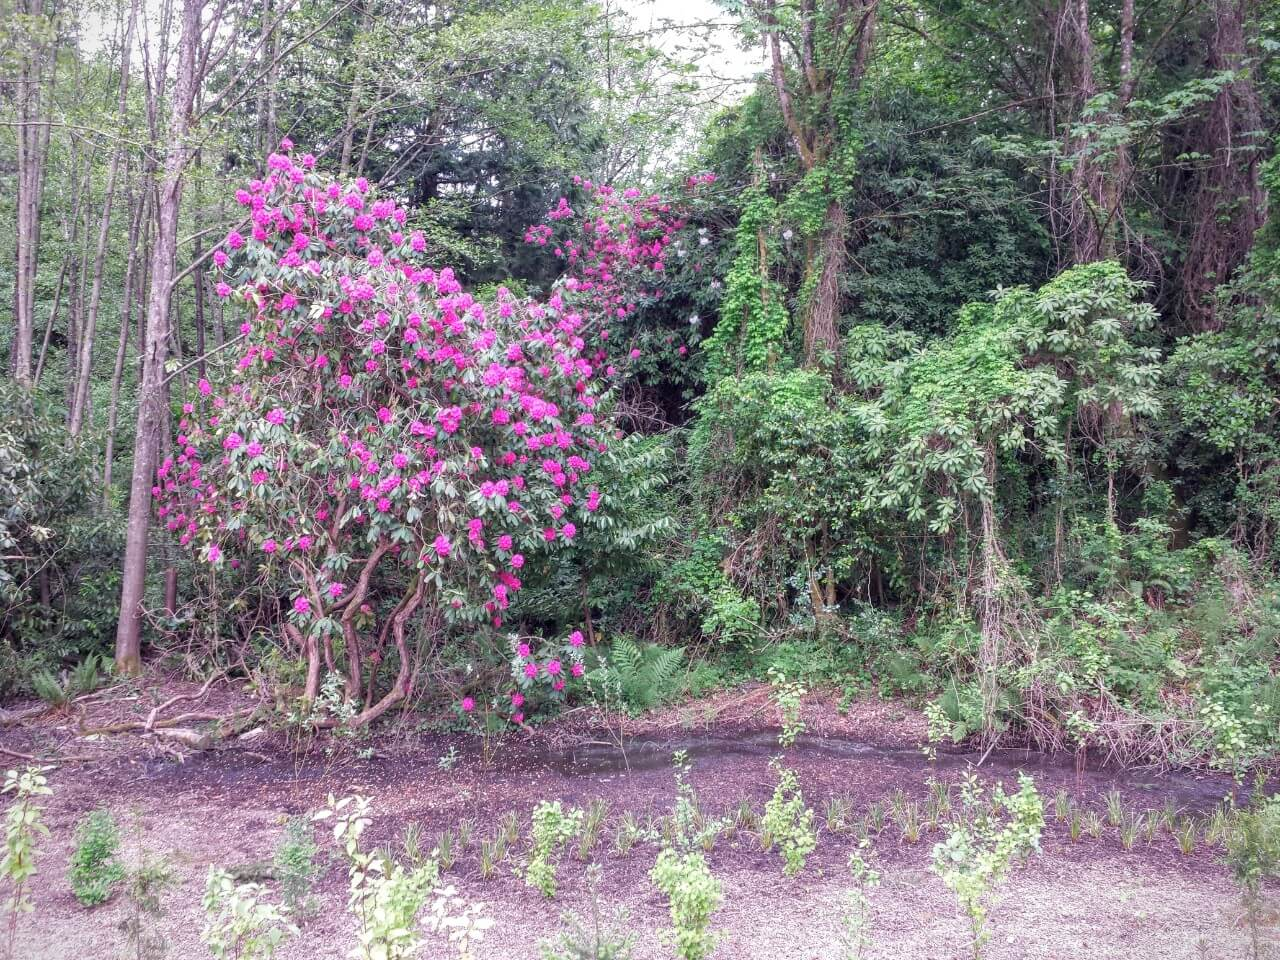 Growing Rhododendron